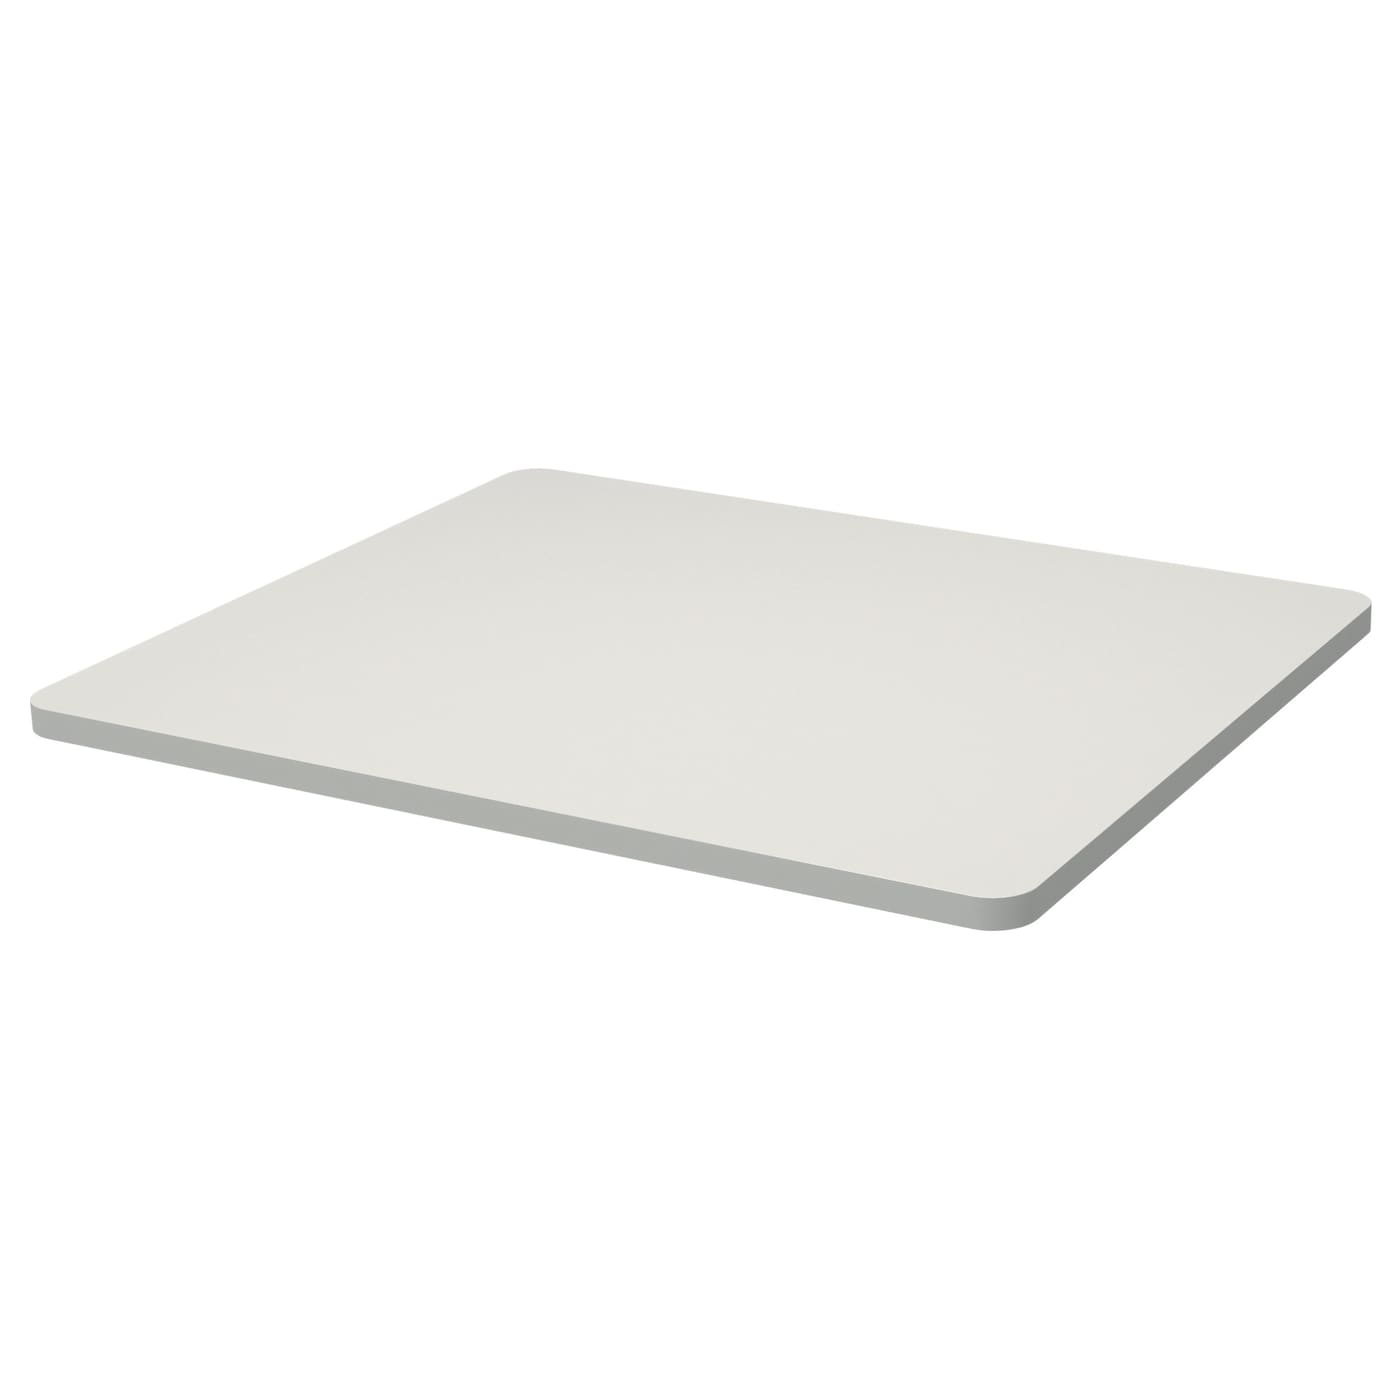 IKEA GRUNDVATTNET chopping board